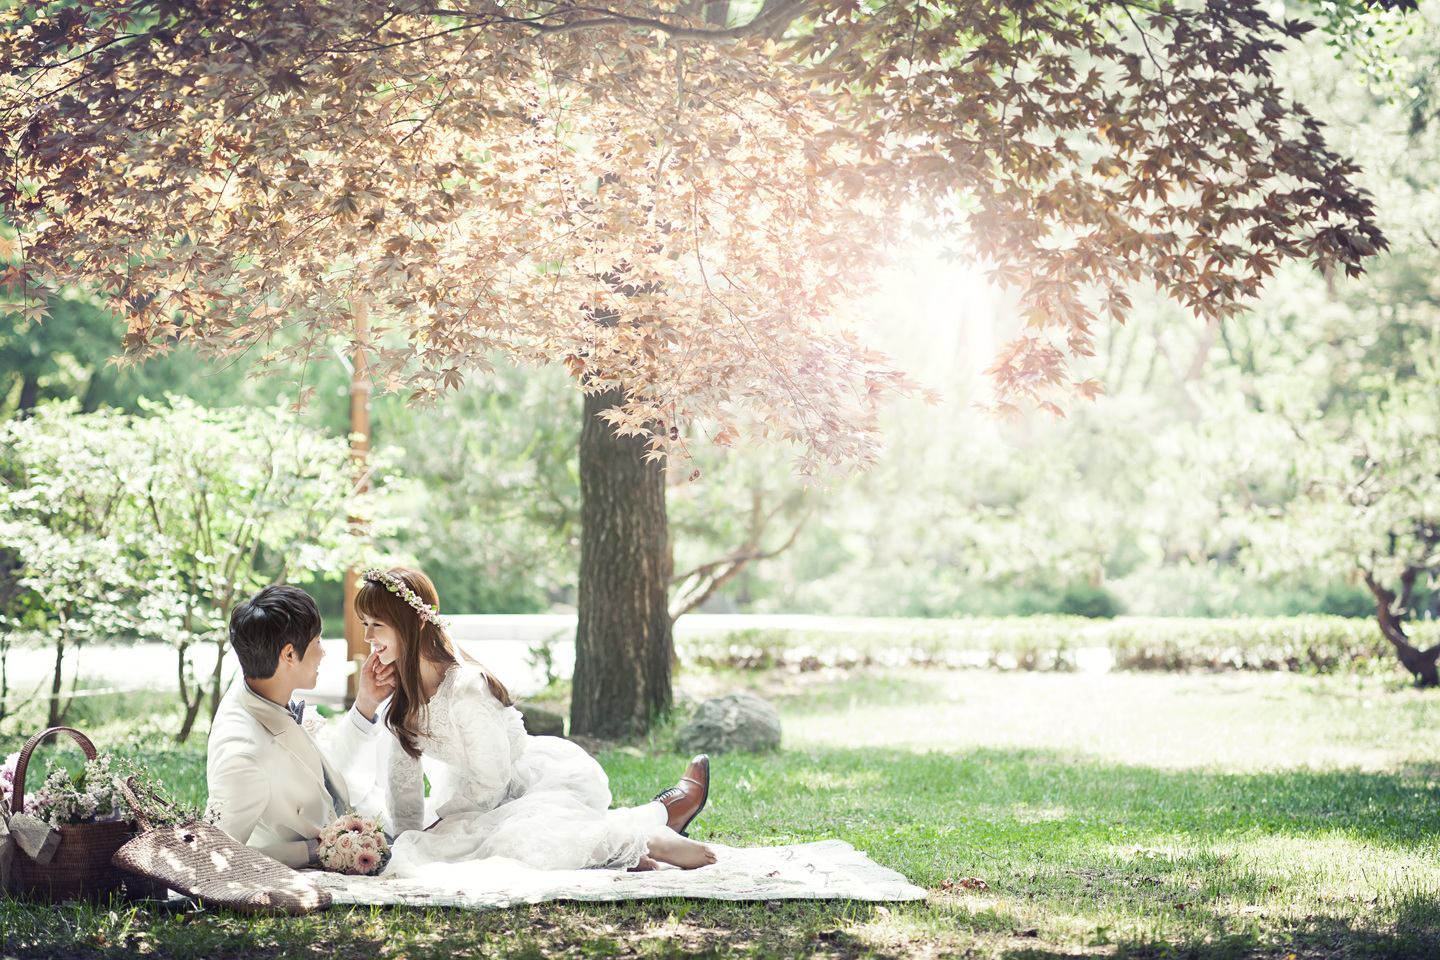 korean-drama-photoshoot-prewedding